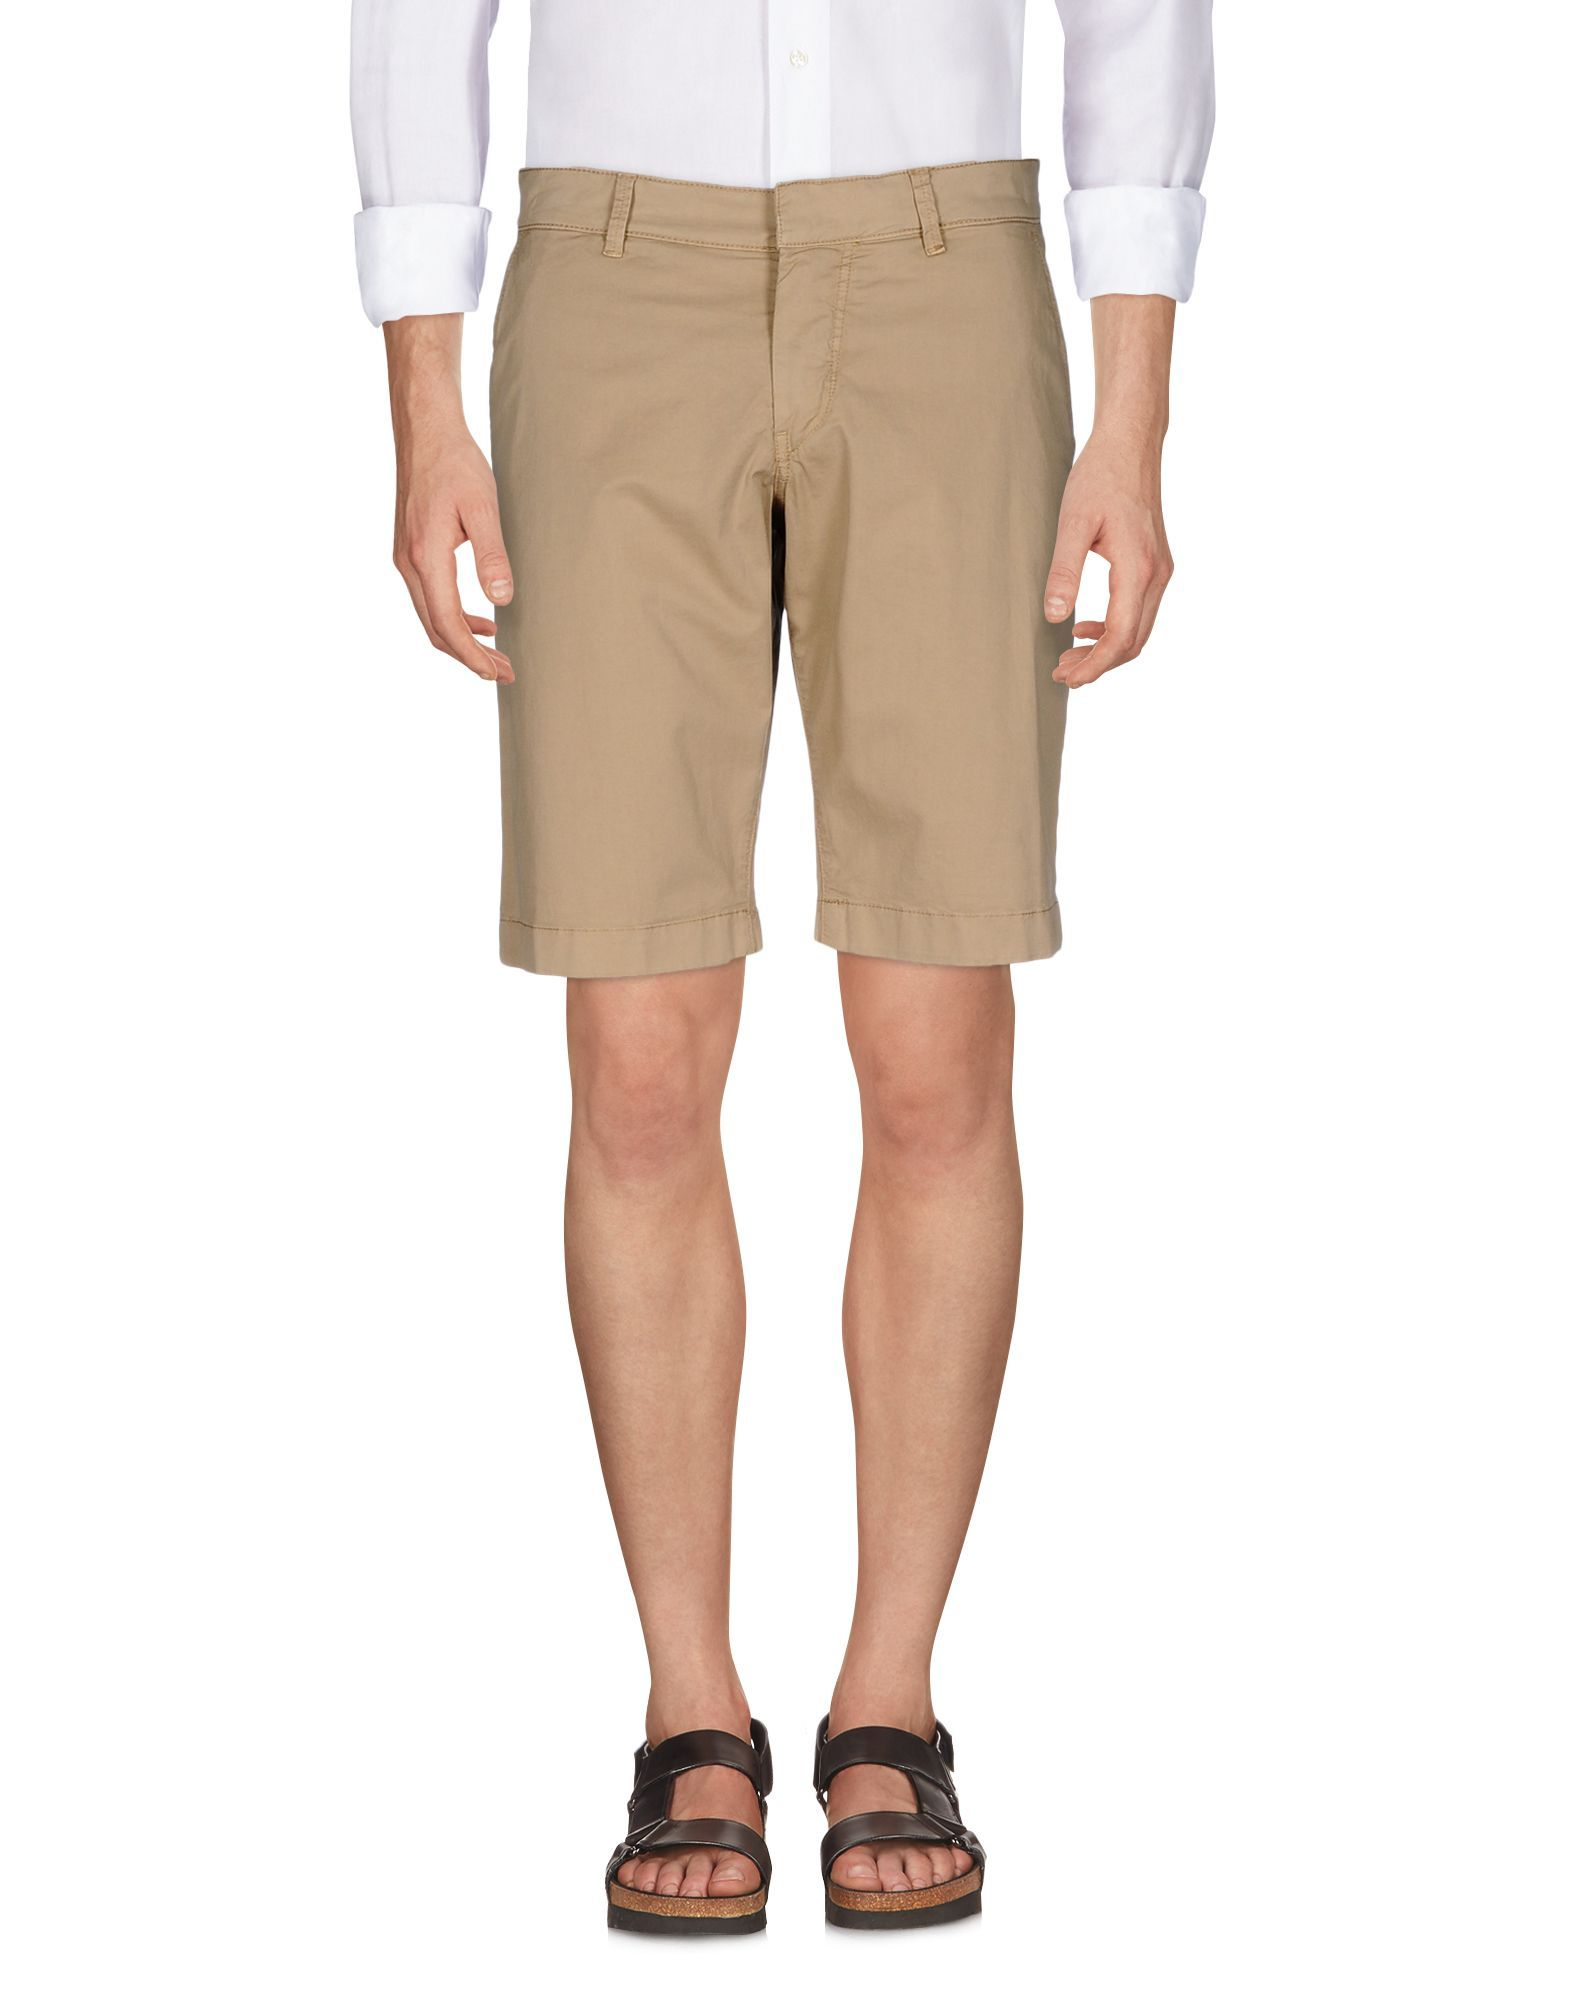 Cheap Pay With Visa TROUSERS - Bermuda shorts Guya G. Clearance Purchase Low Price Sale Online Outlet Visa Payment Find Great 7Fy7o